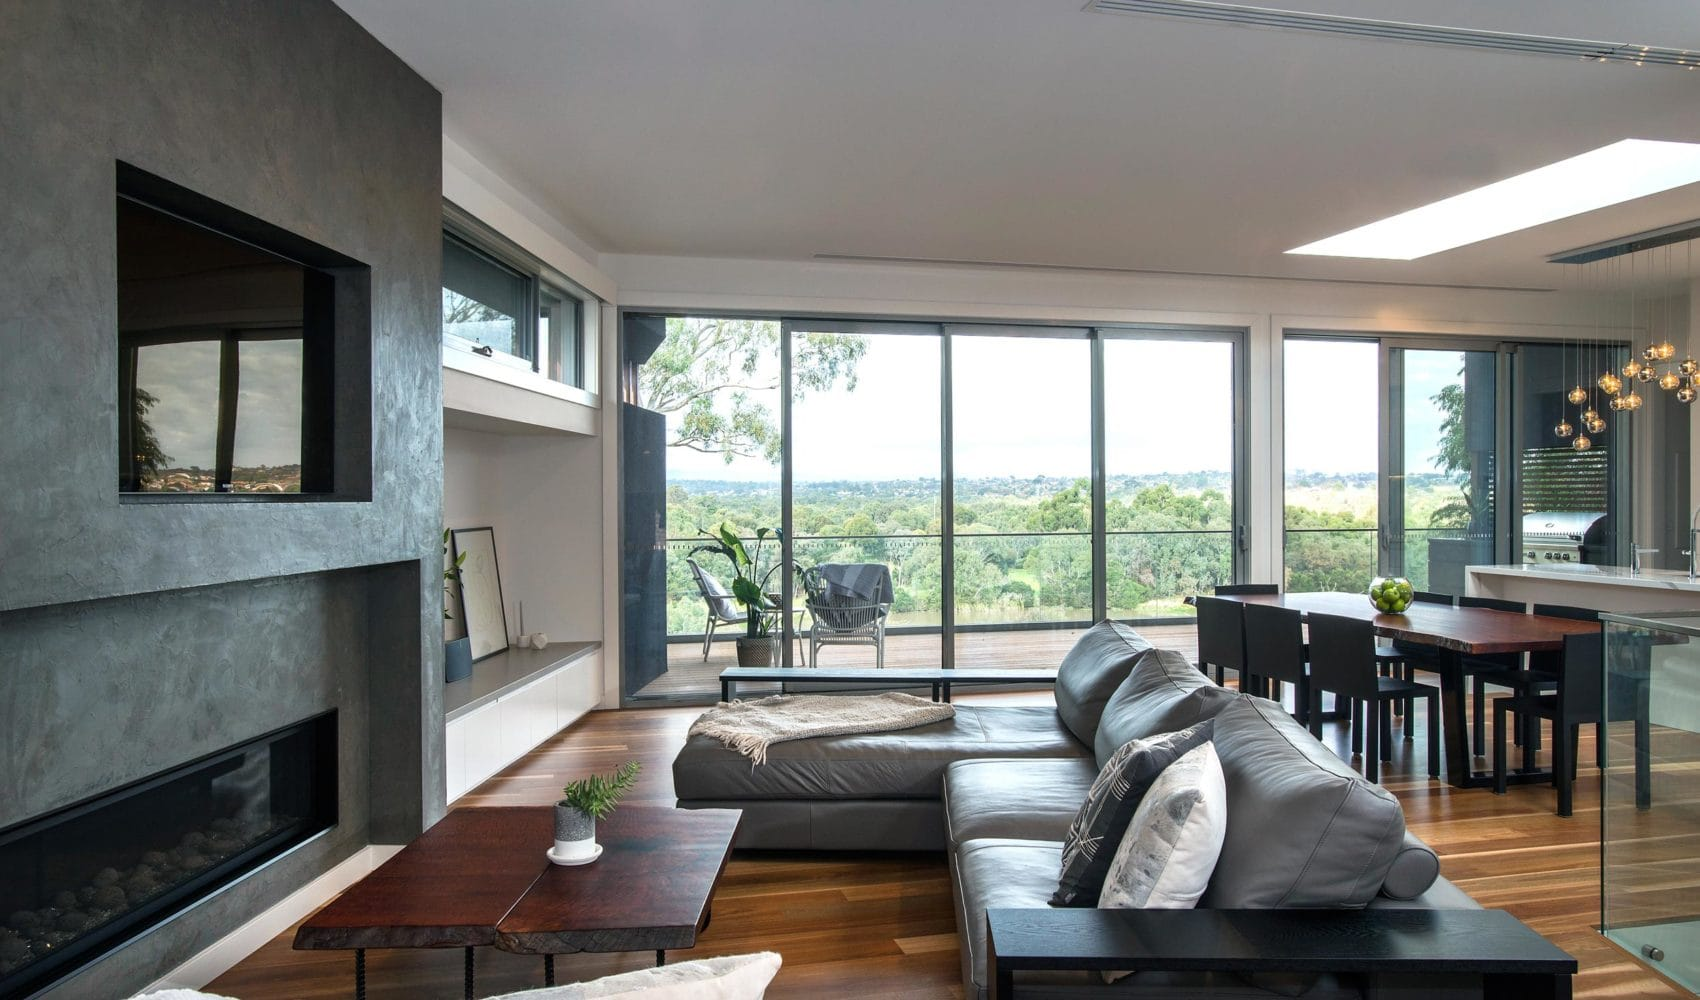 A modern living room built by Destination Living, containing a couch, coffee table, dining table, looking out a large window into the greenery beyond.